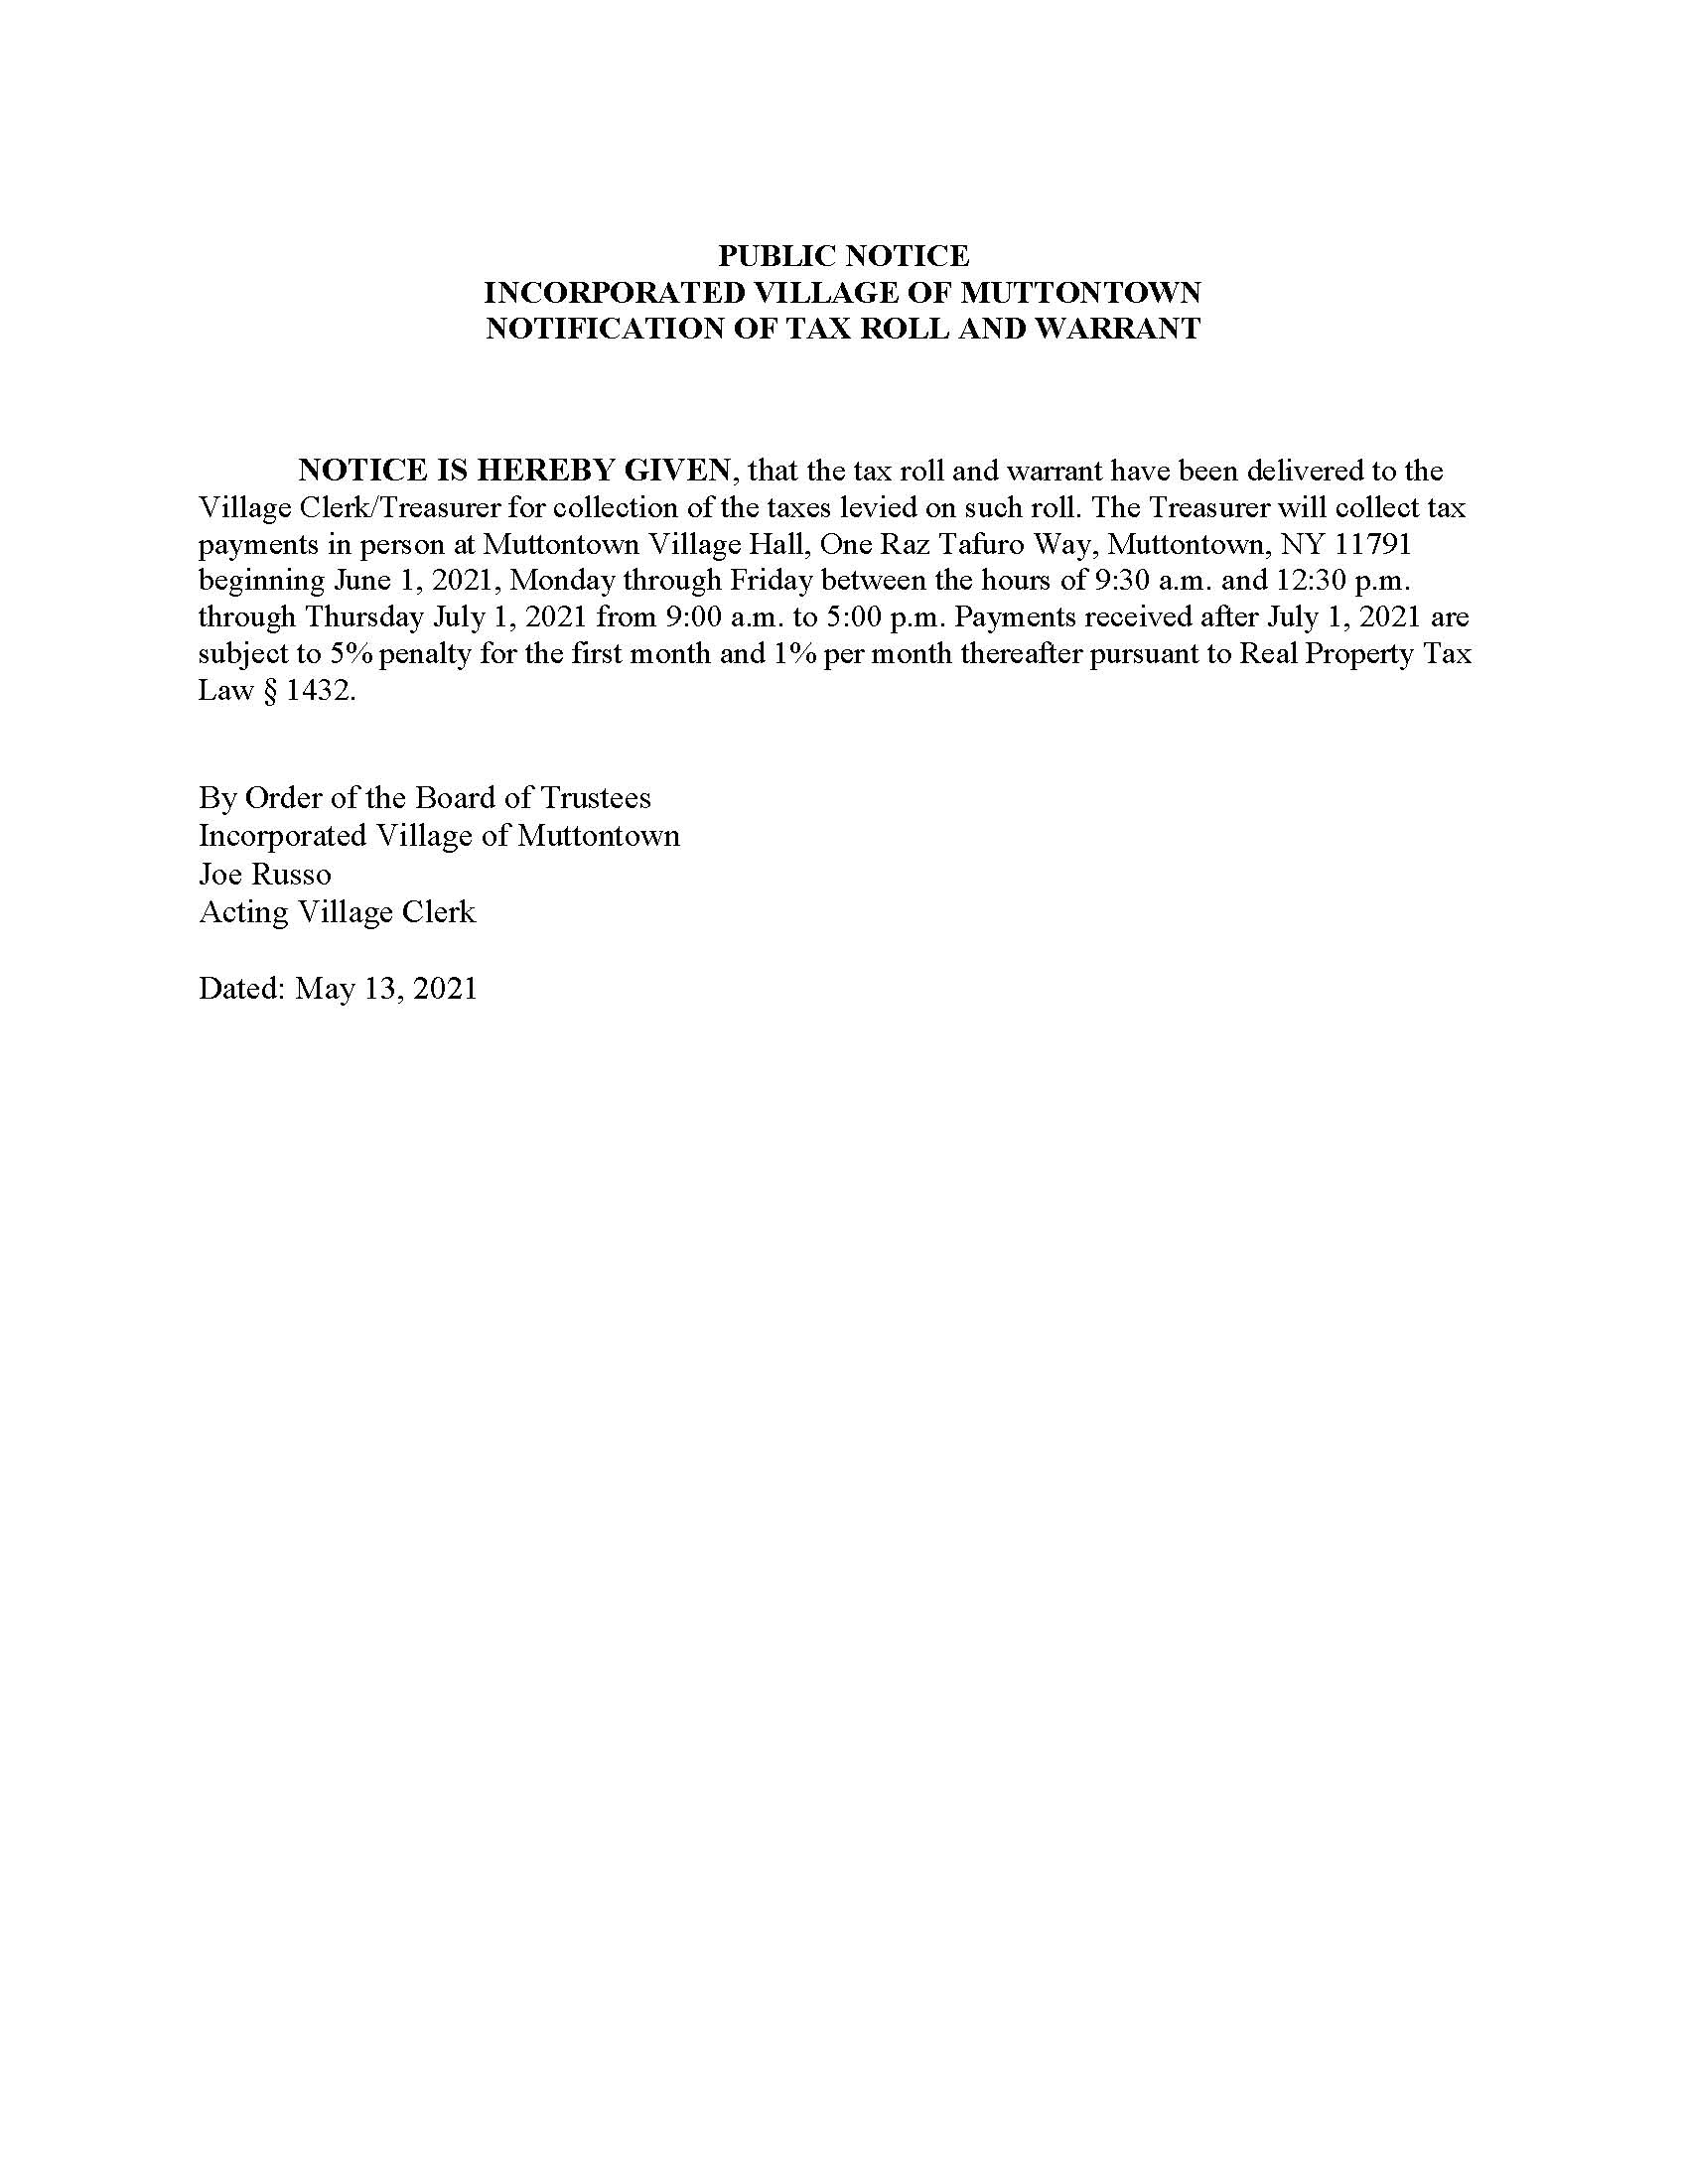 Public Notice Notification of Tax Roll and Warrant